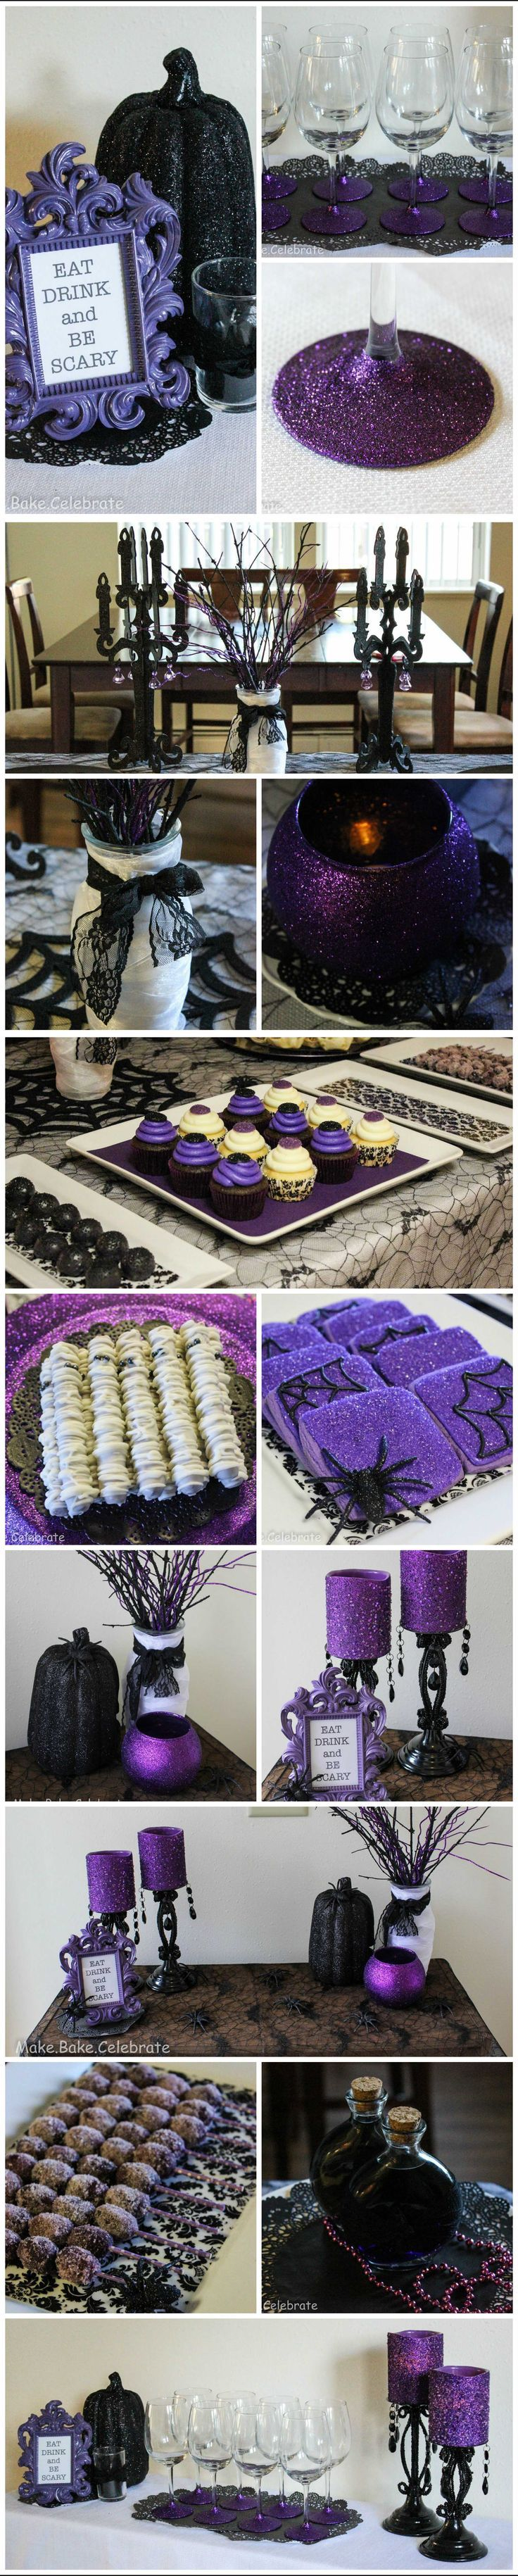 DIY: Purple & Black, Glitter & Glam Halloween party ideas. Your Halloween Fashionista Party needn't break the bank to be fabulous!